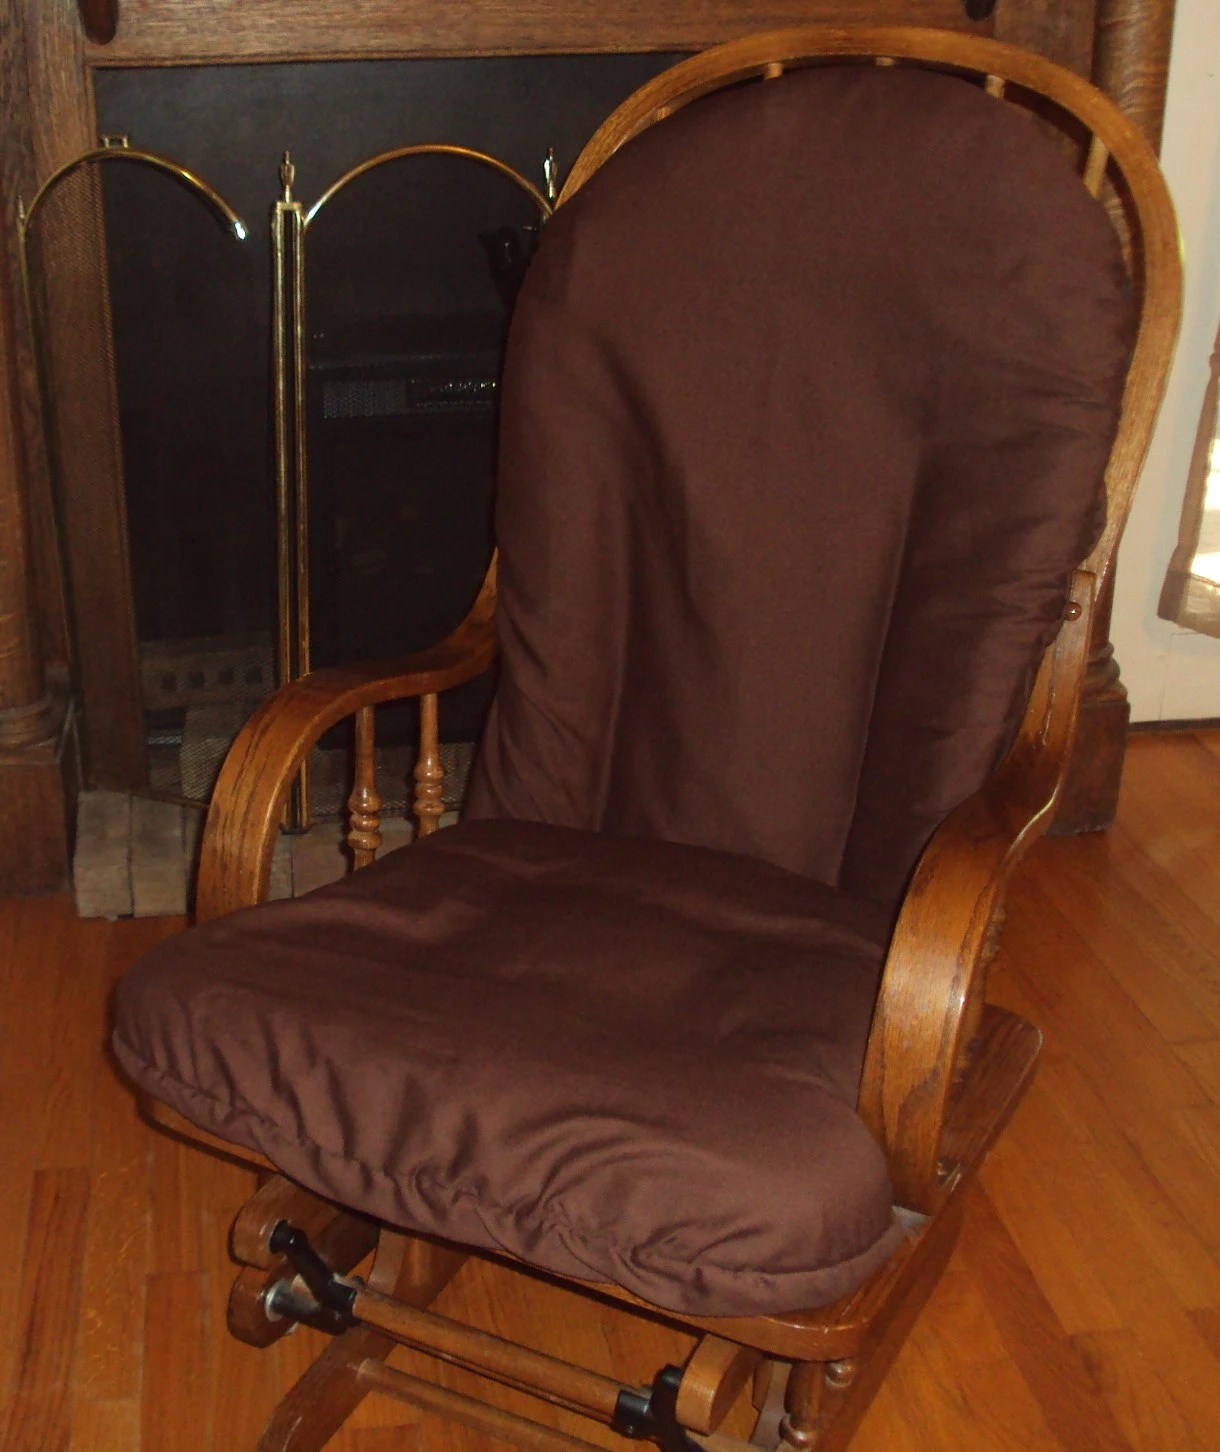 Glider Rocker SlipCover for your cushion Rich Choc Brown